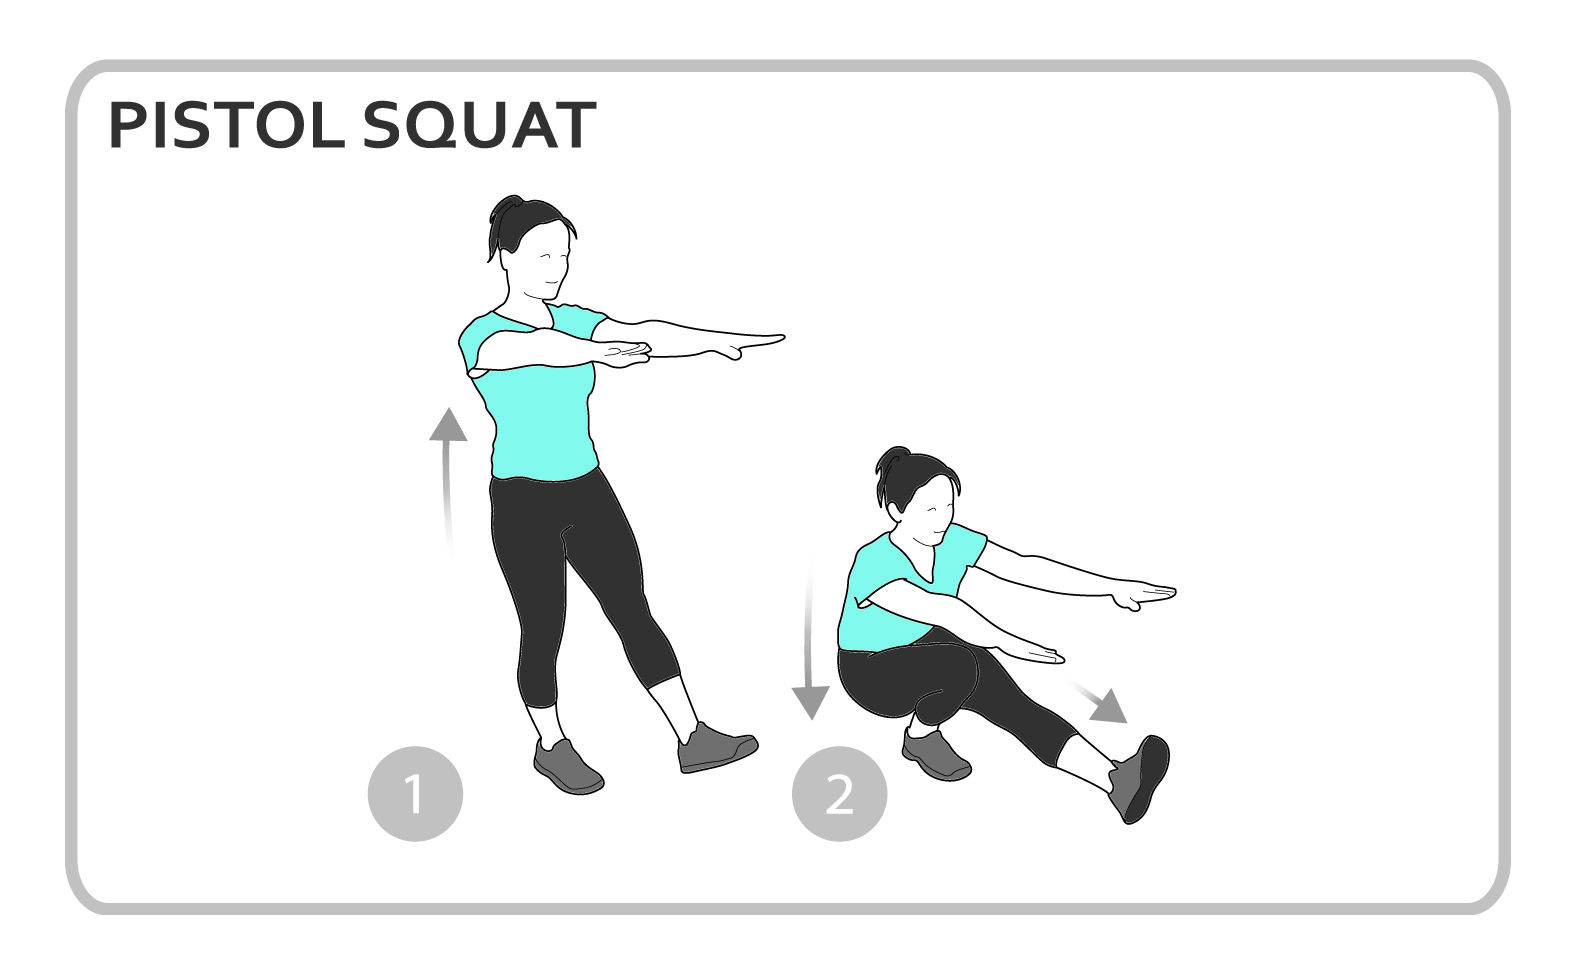 medium resolution of pistol squat exercise diagram lower body personal fitness workout